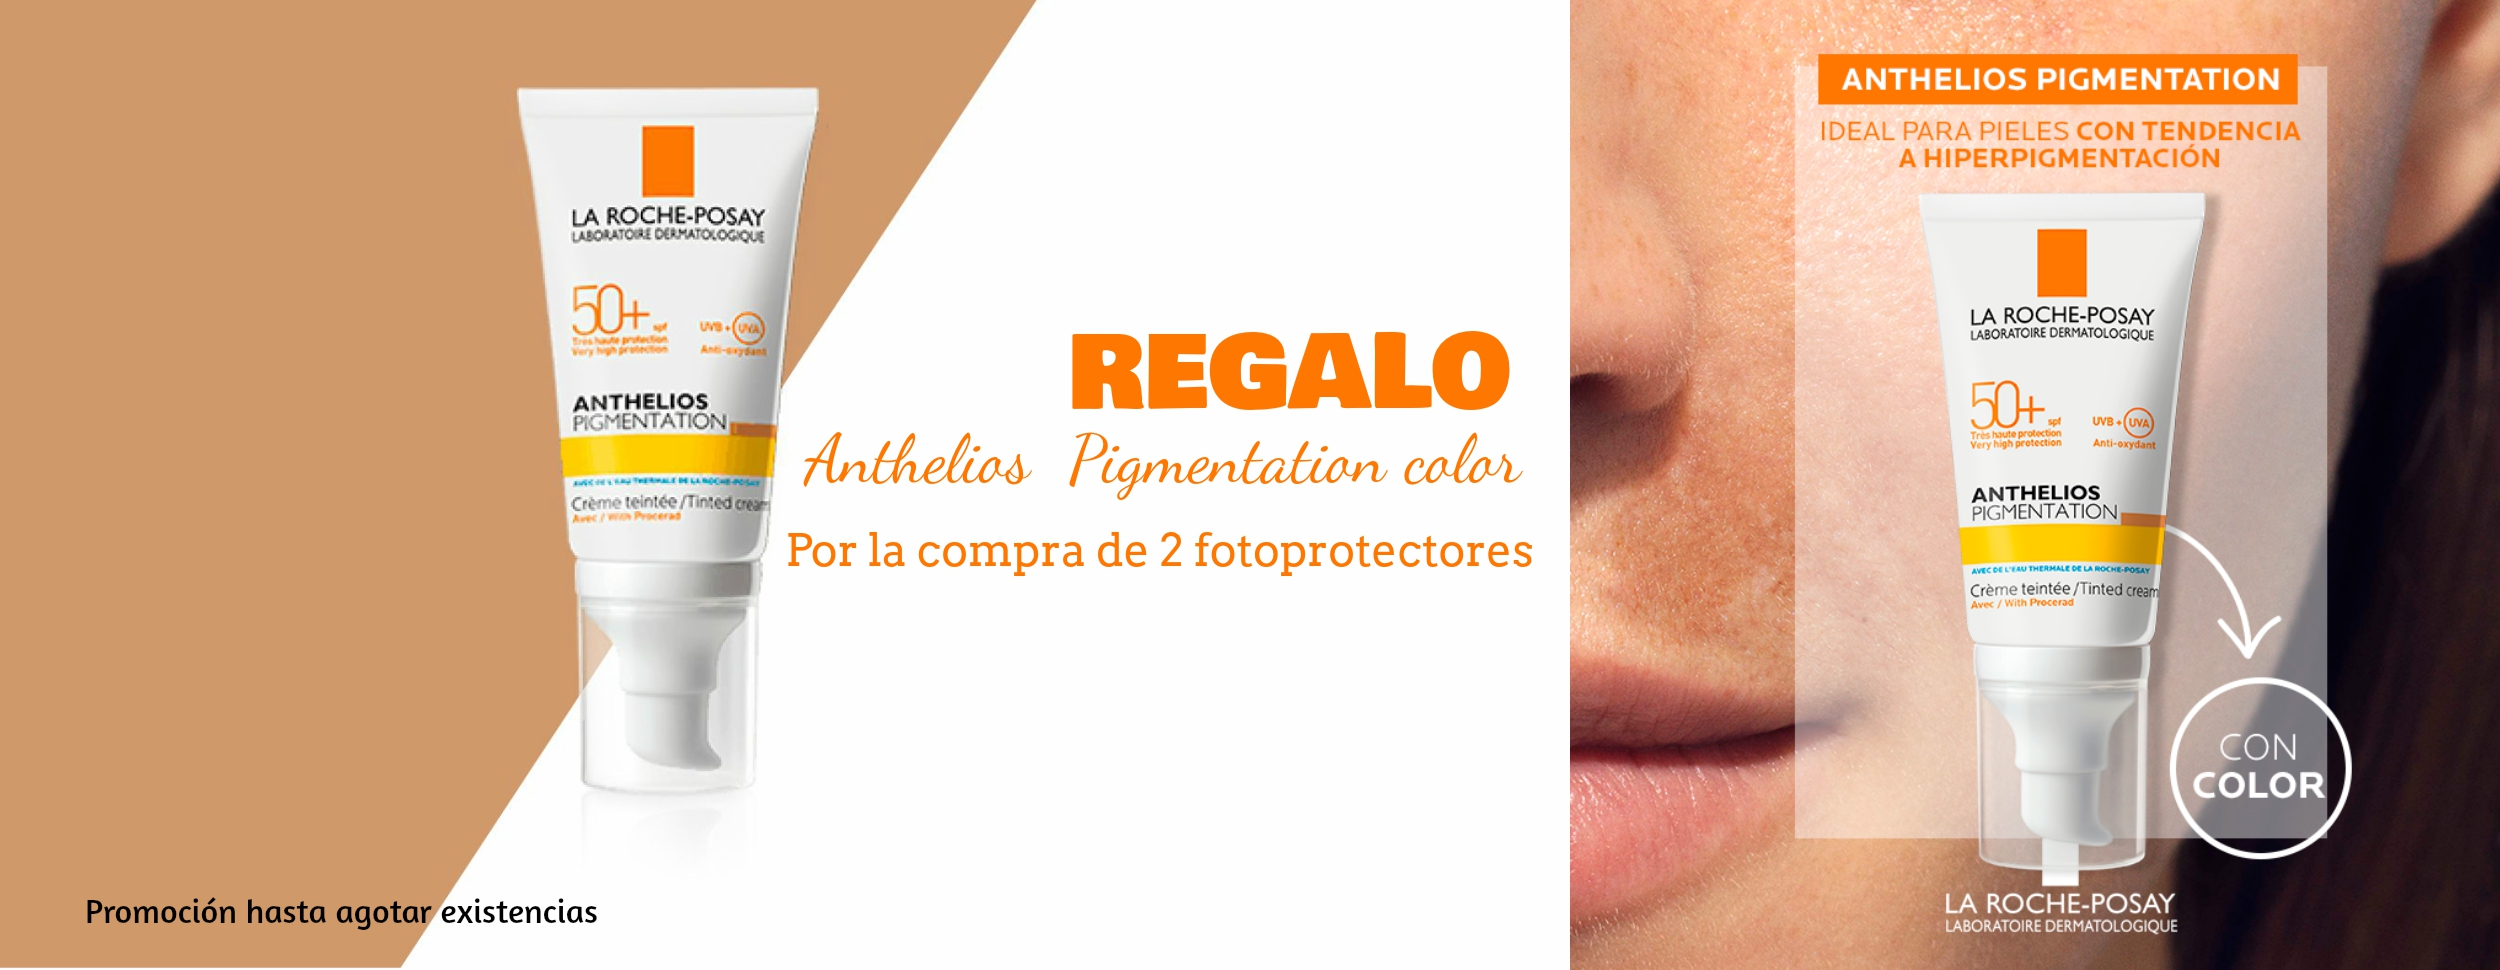 280619021615-regalo-anthelios-farmaciadiez